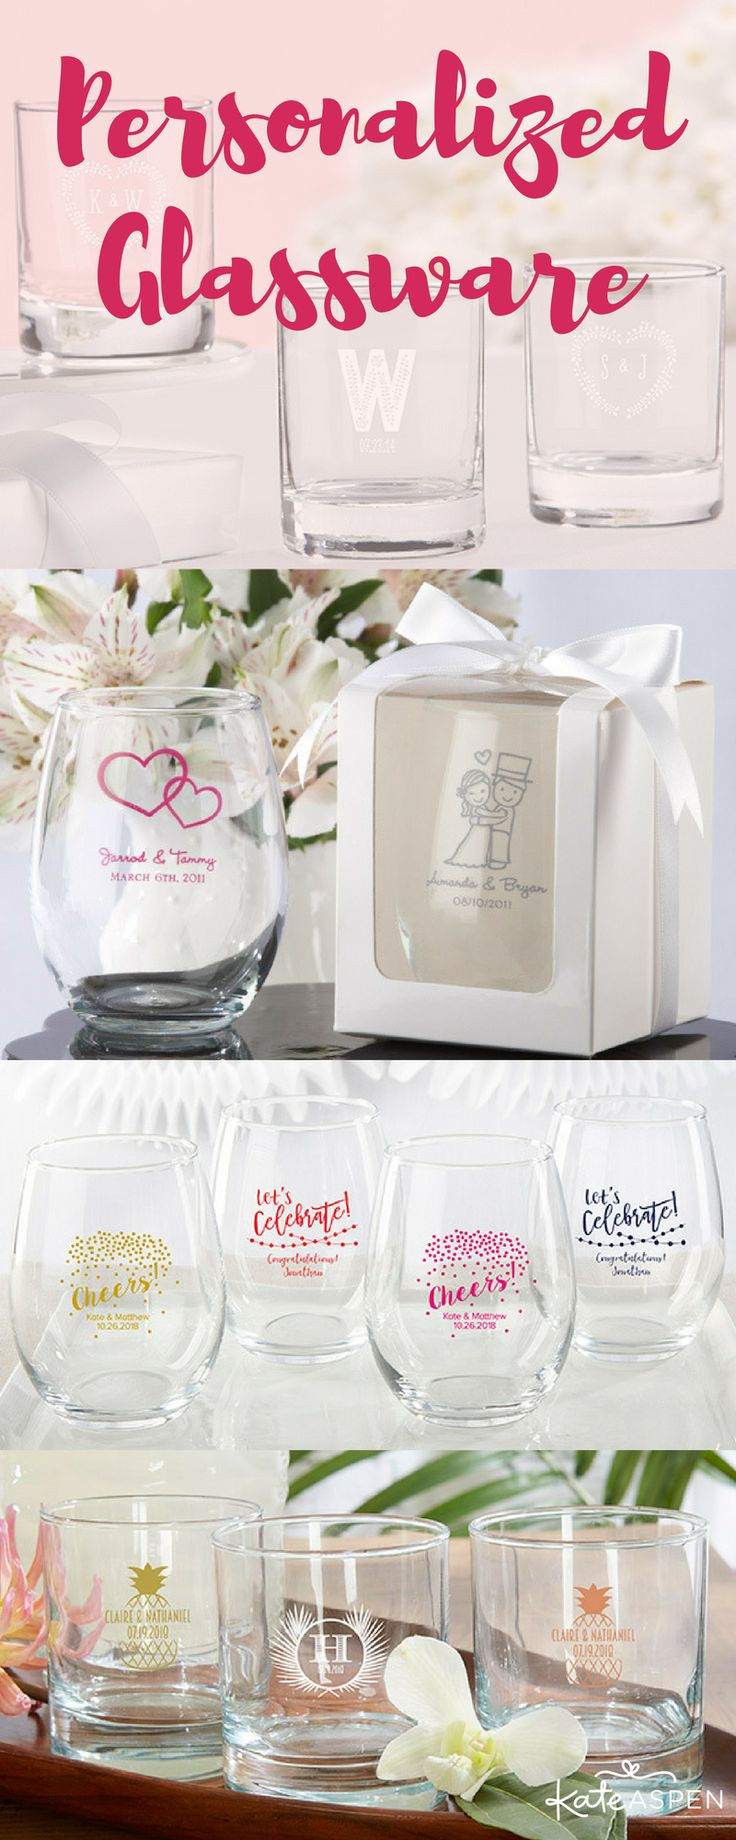 8 best Personalized Strawberry Jam Wedding Favors images on ...